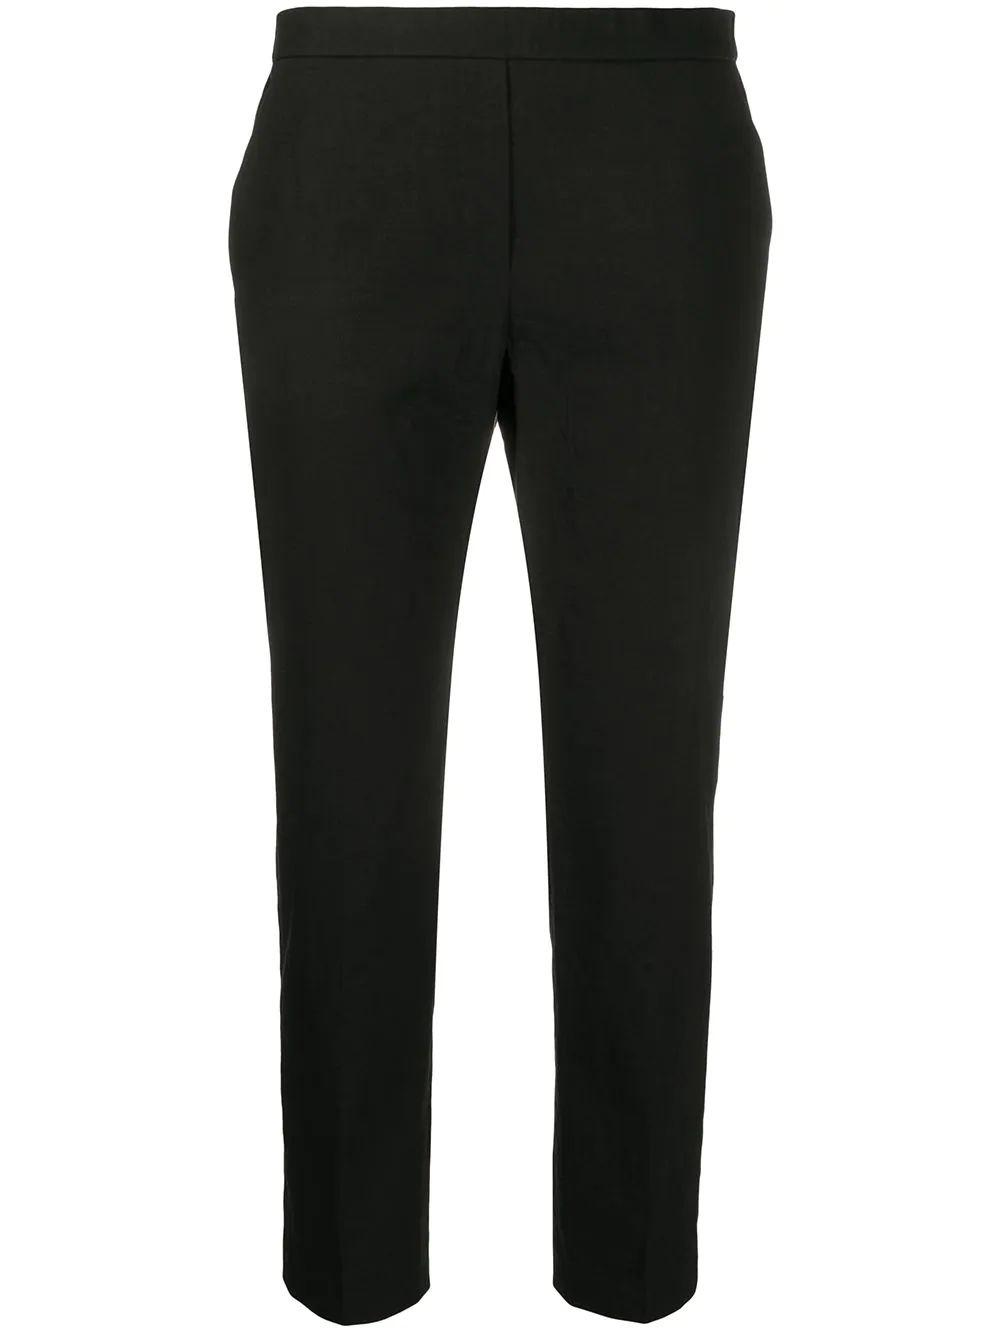 Treeca Pull On Eco Crunch Pant